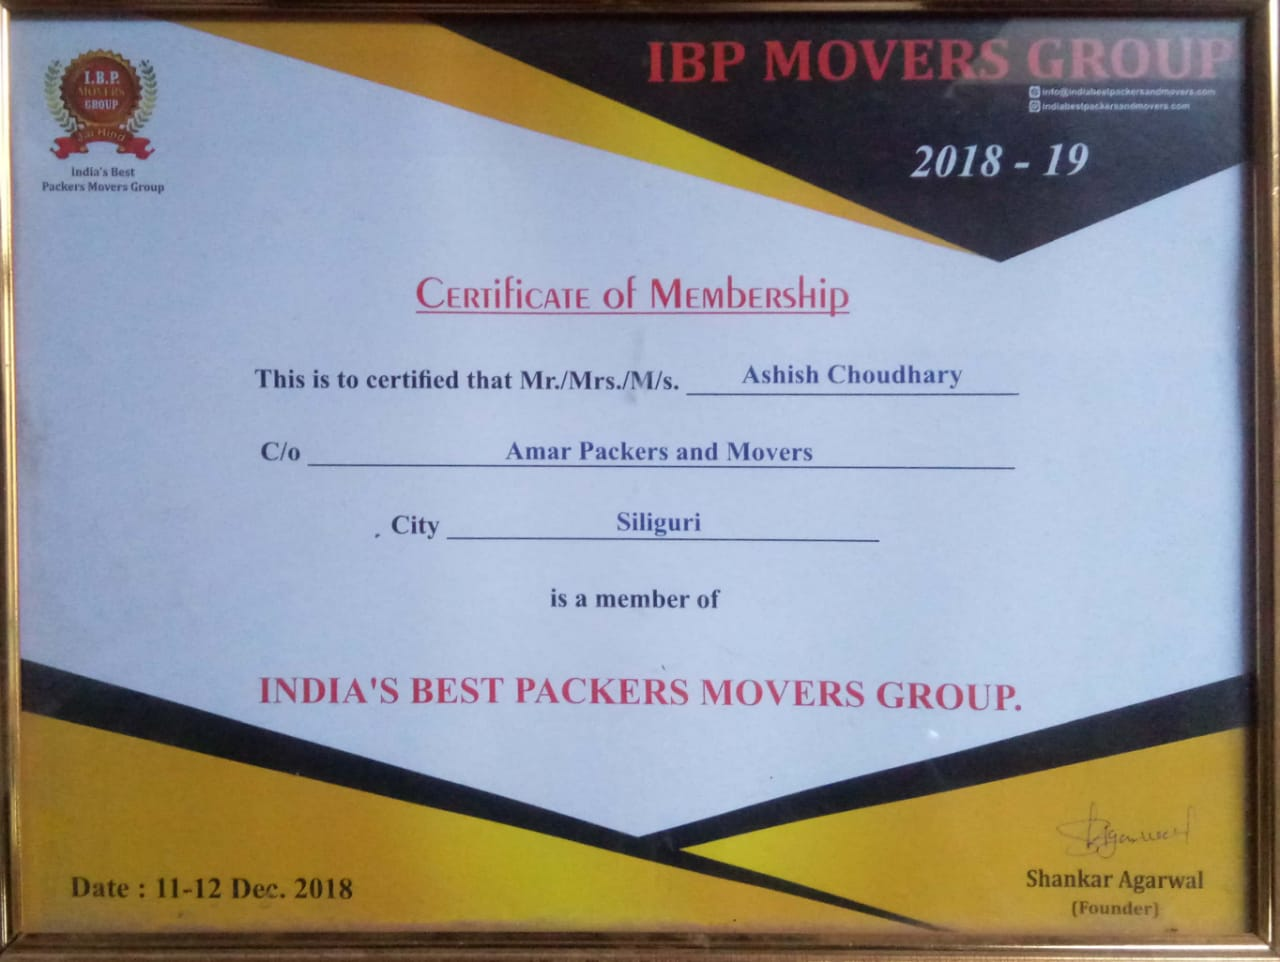 Amar Packers and Movers